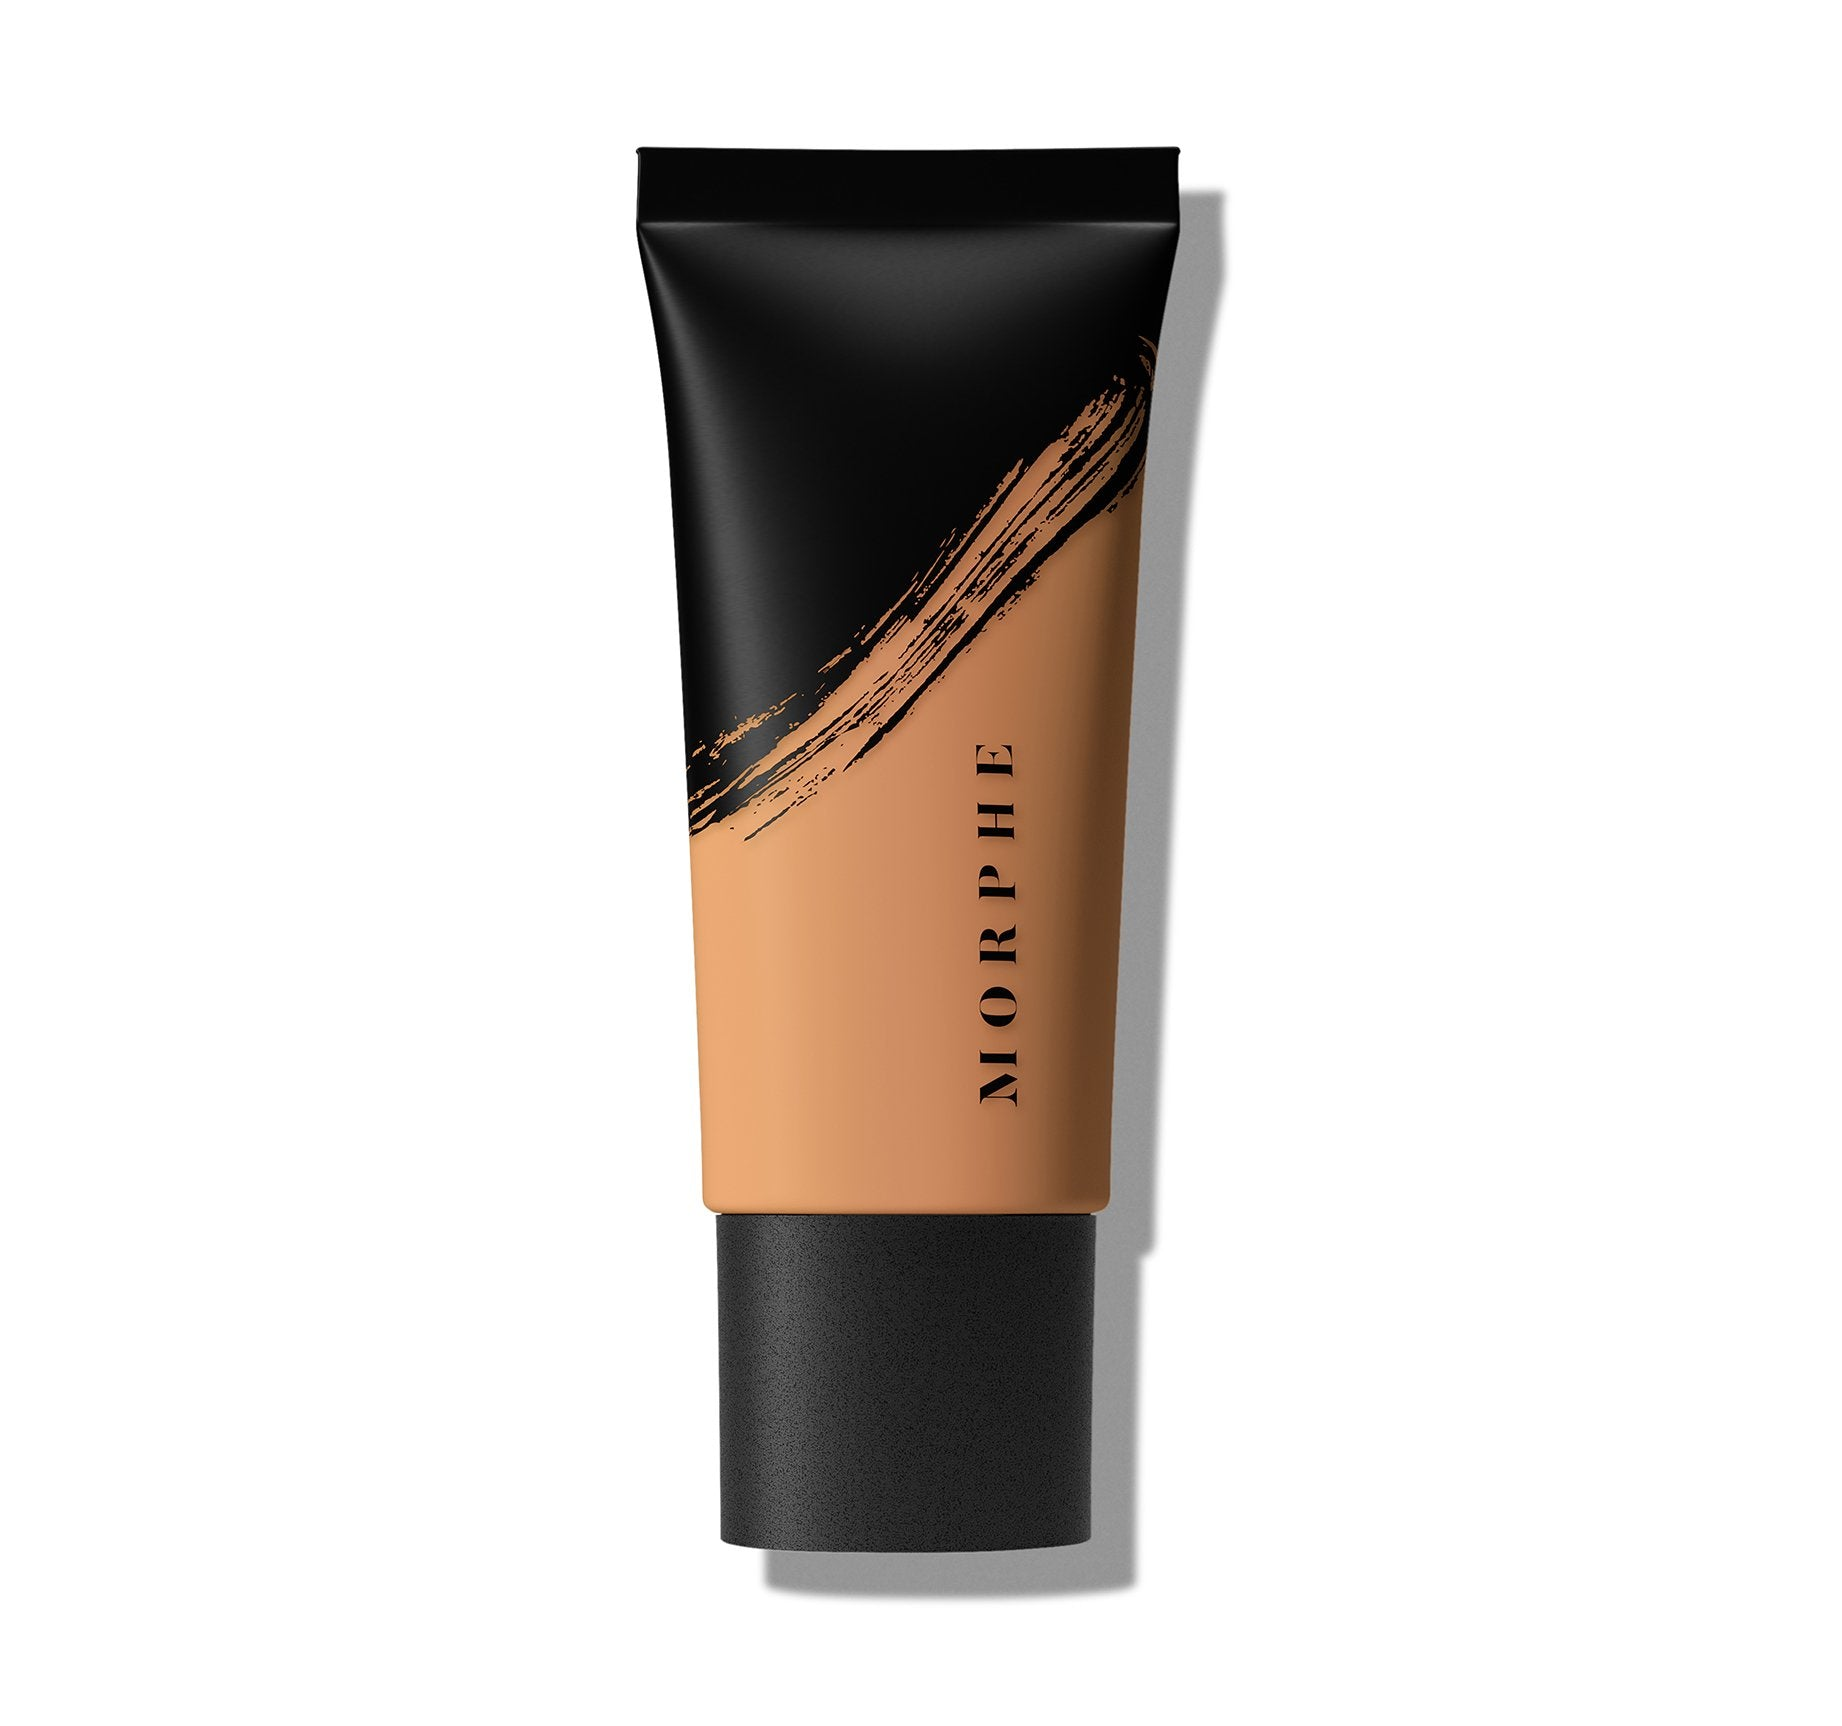 FLUIDITY FULL-COVERAGE FOUNDATION - F3.10, view larger image